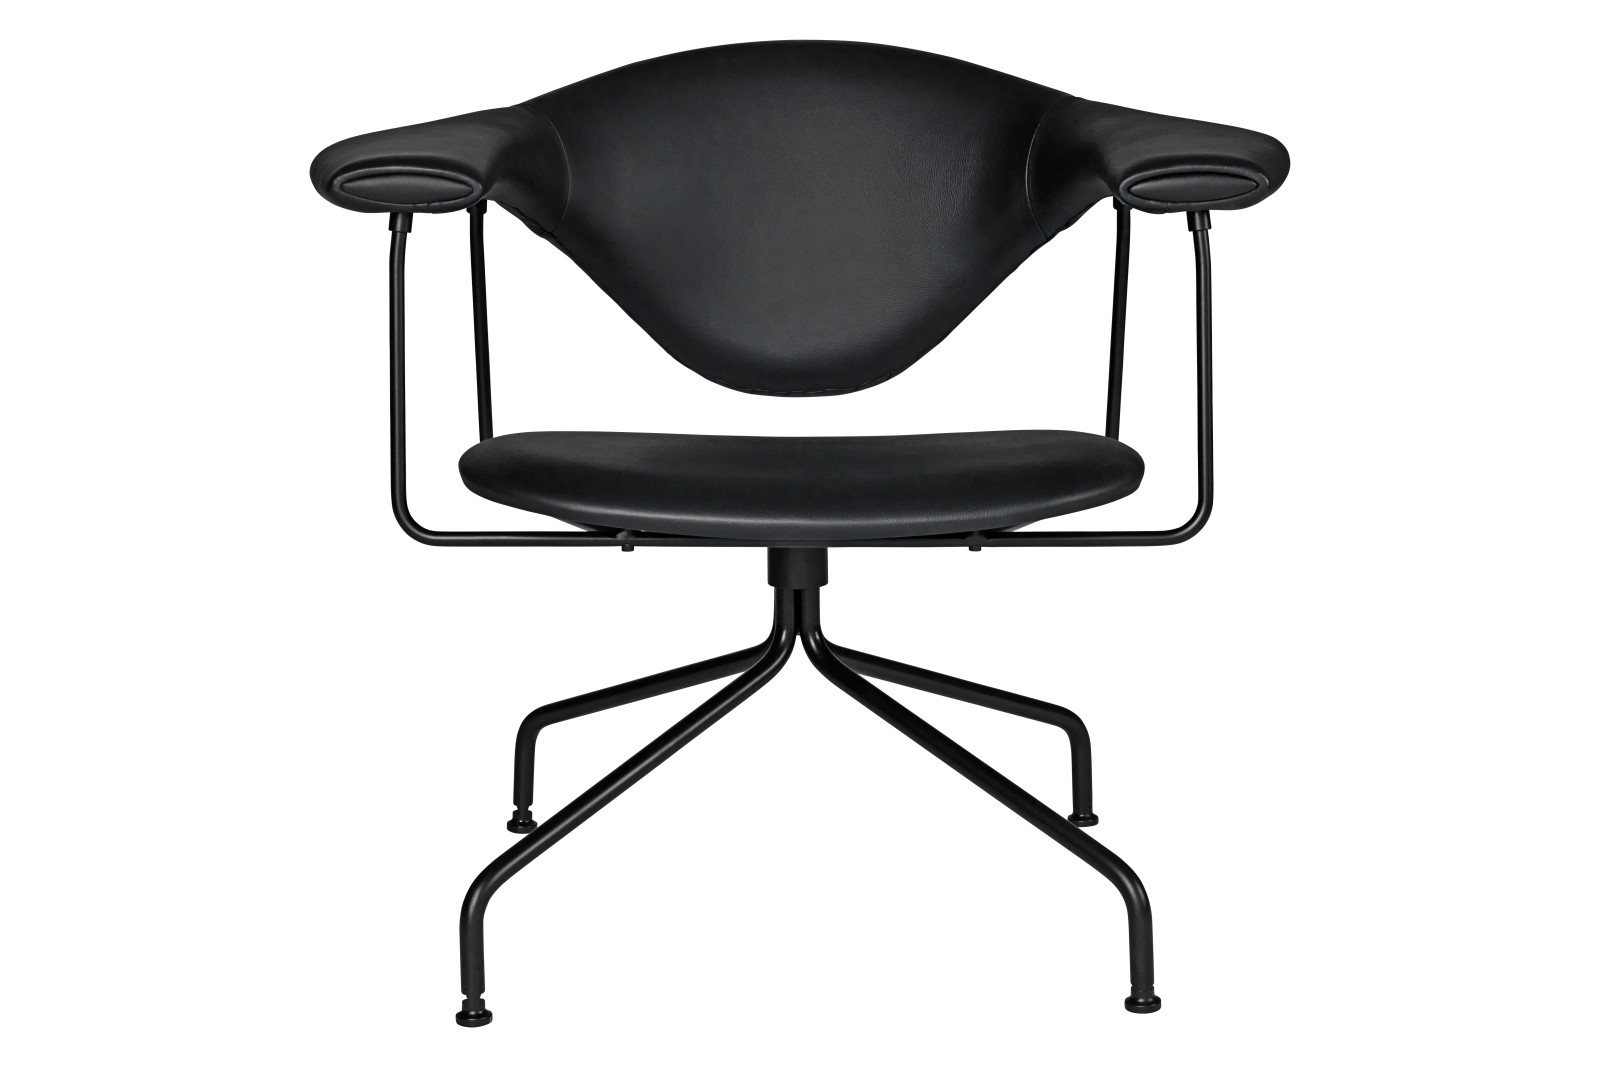 Masculo Lounge Chair, Swivel Base Price Grp. 06